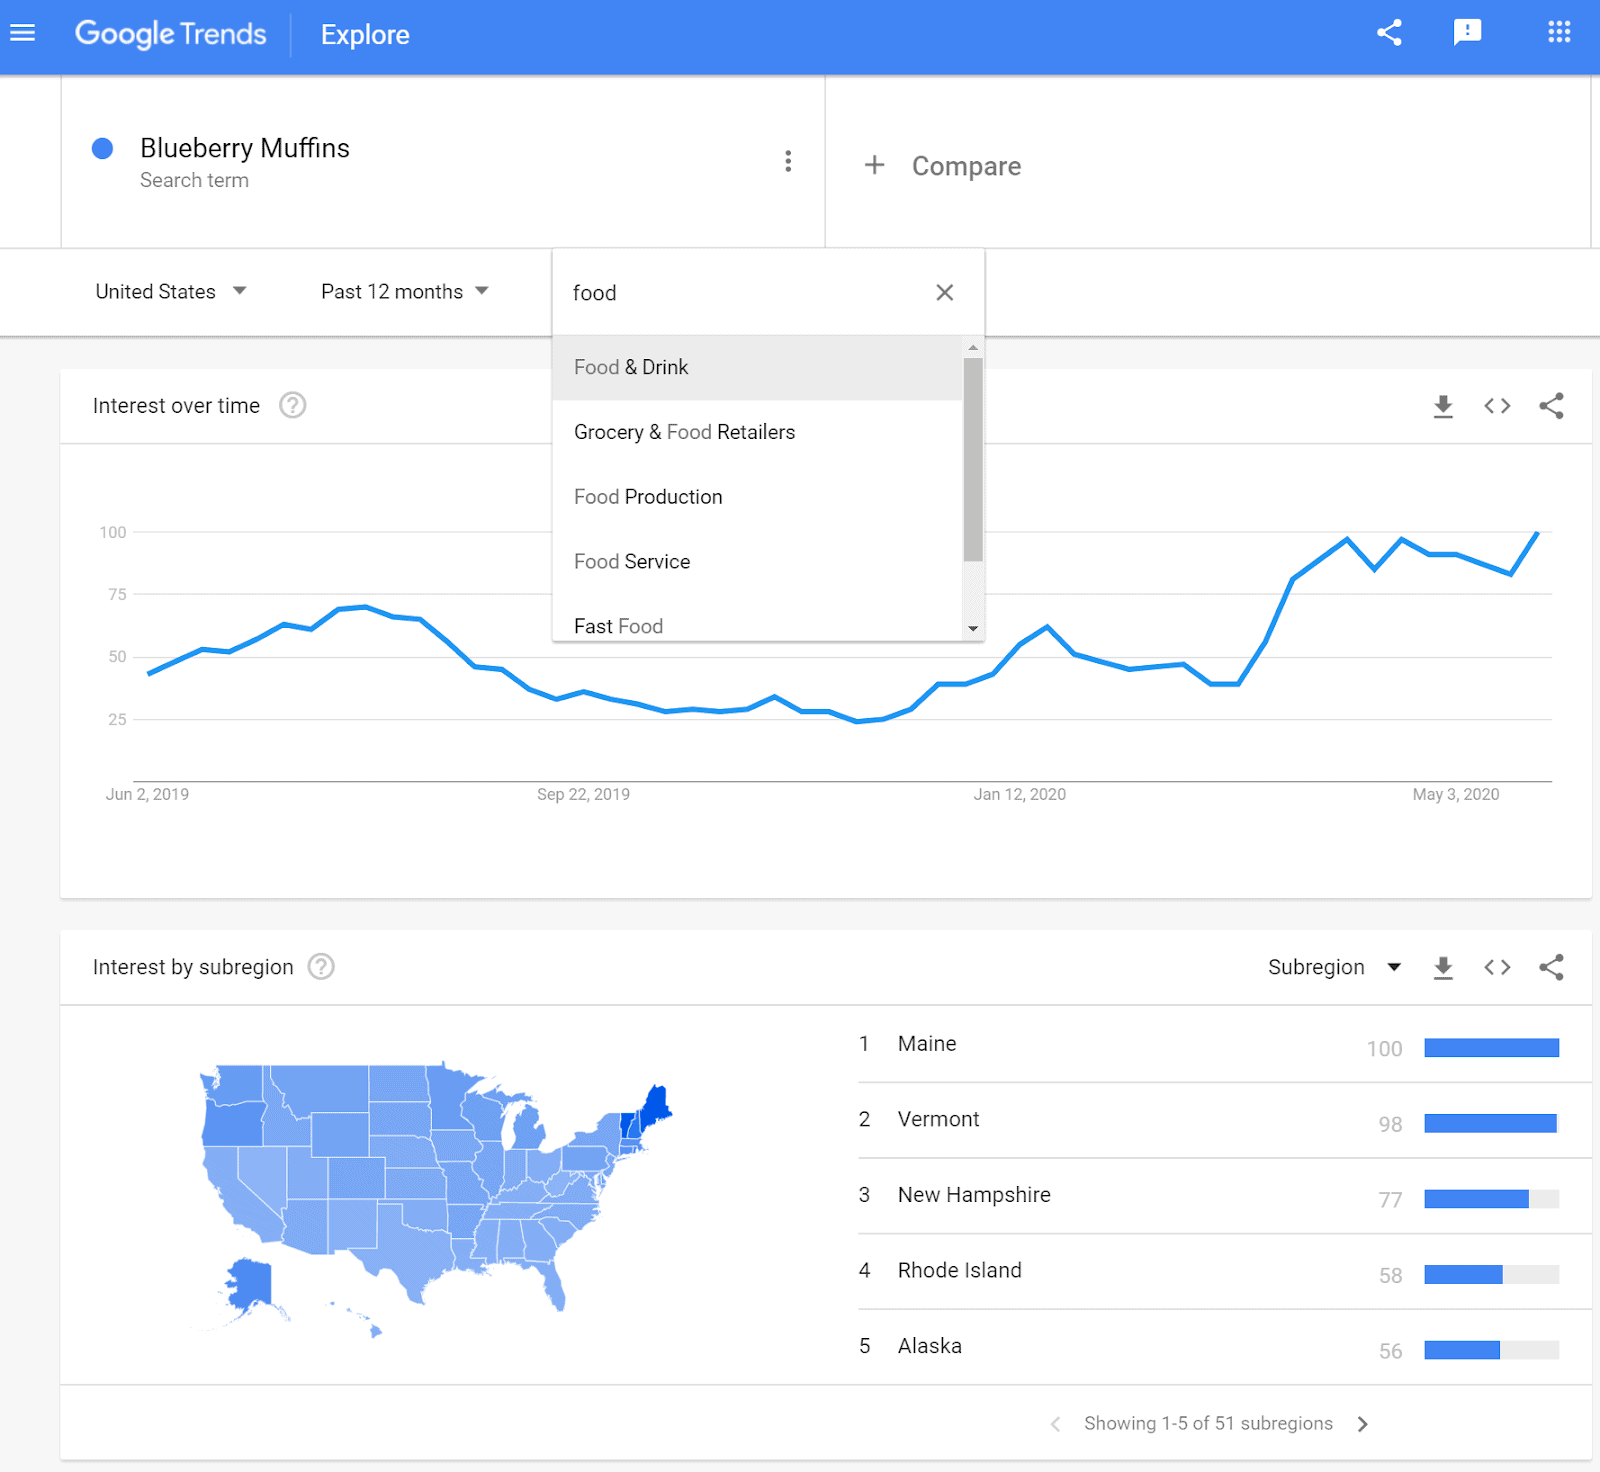 Google Trends explore page about Blueberry Muffins